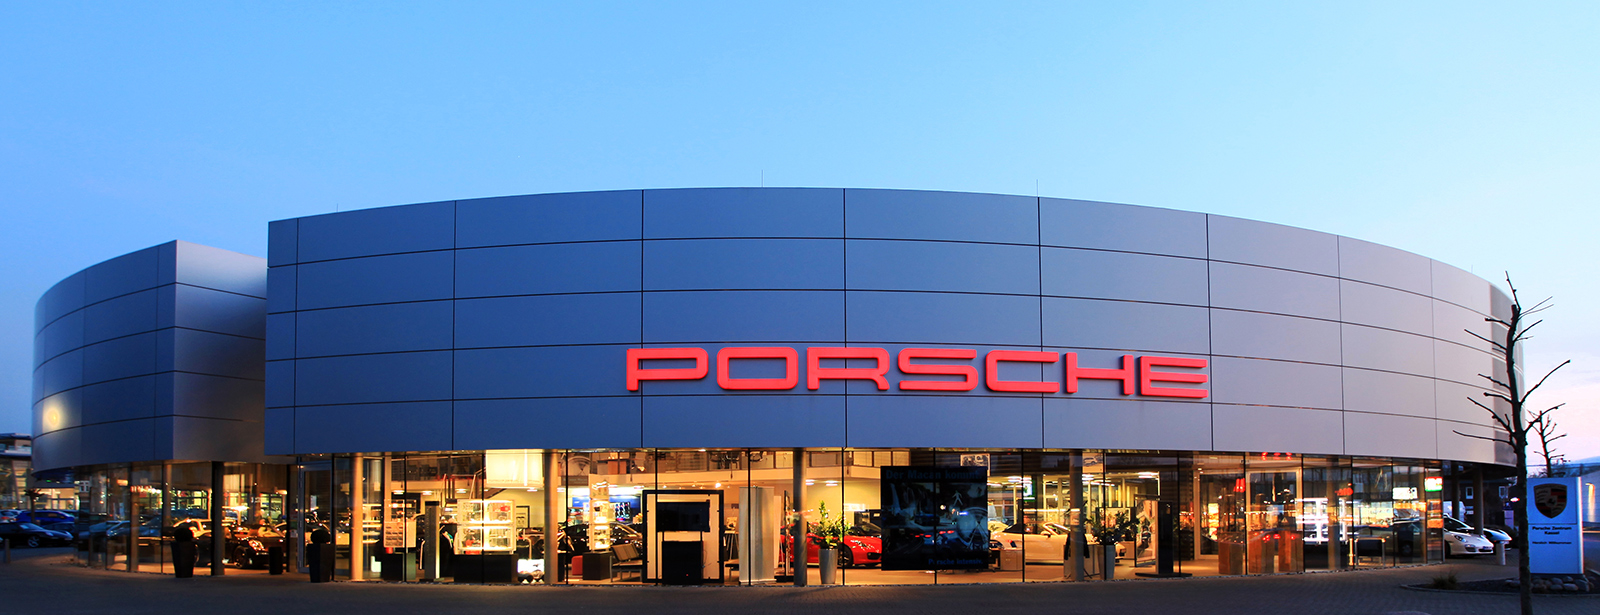 porsche zentrum kassel in kassel branchenbuch deutschland. Black Bedroom Furniture Sets. Home Design Ideas